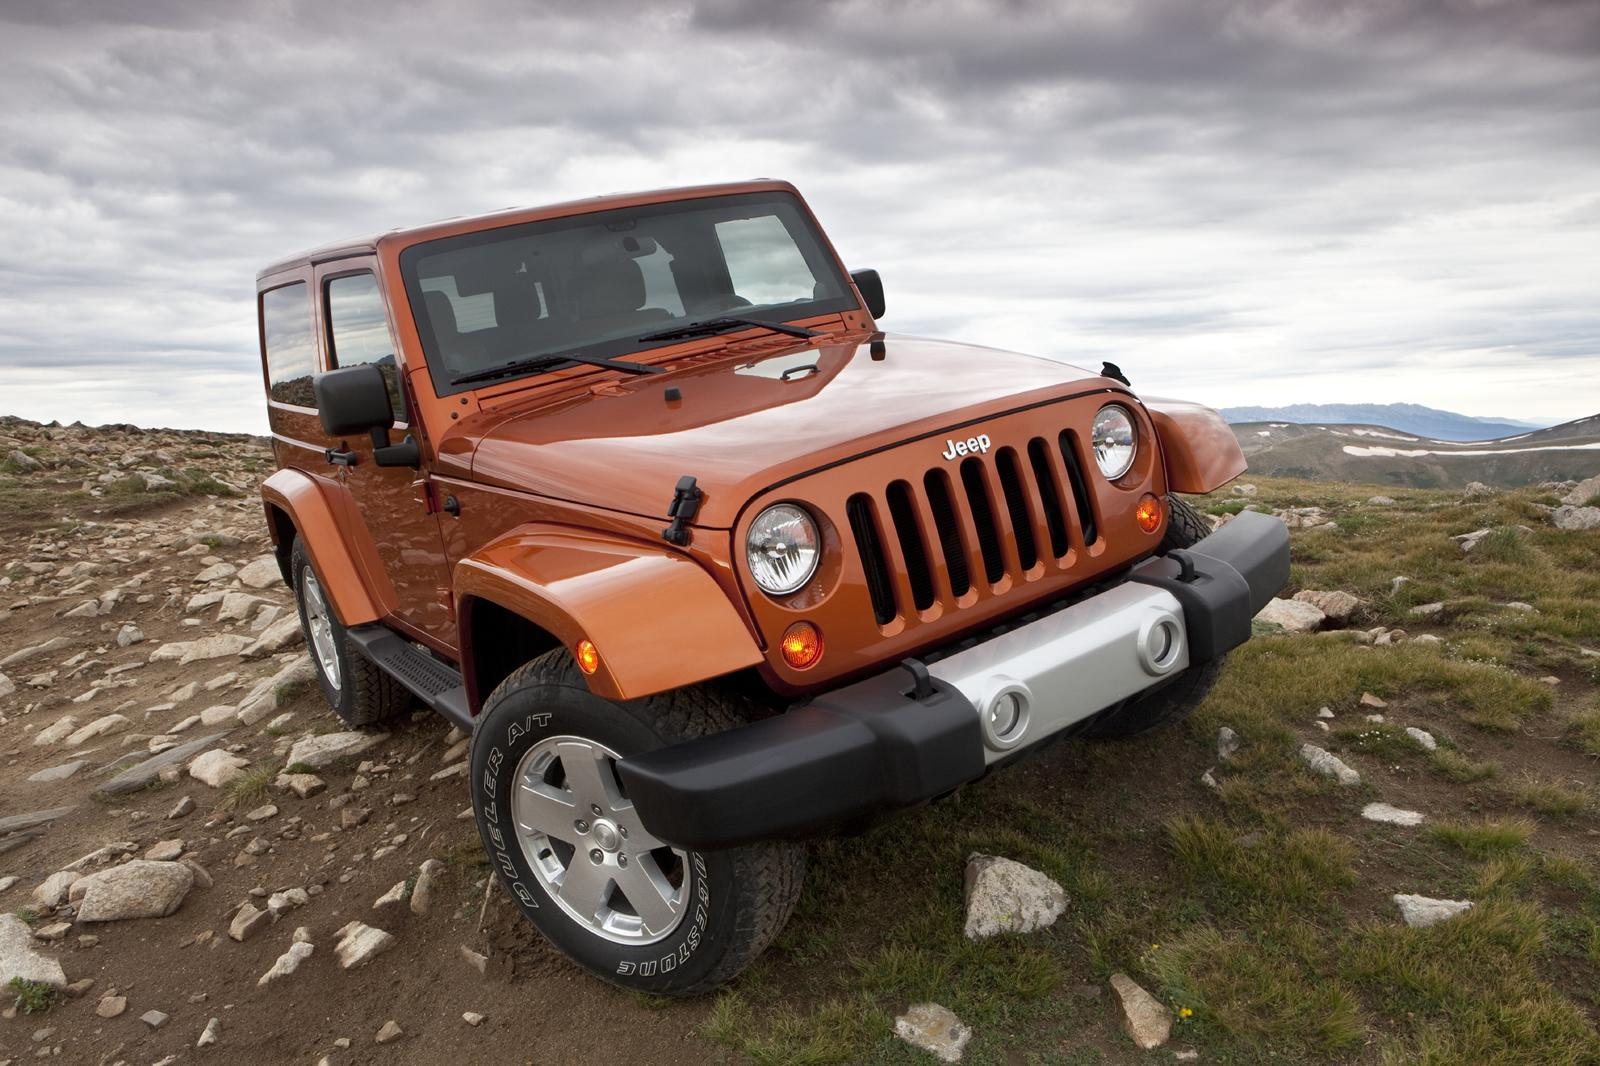 2012 Jeep Wrangler 12 2012 Jeep Wrangler with New Car Tuning Accessories – A Report